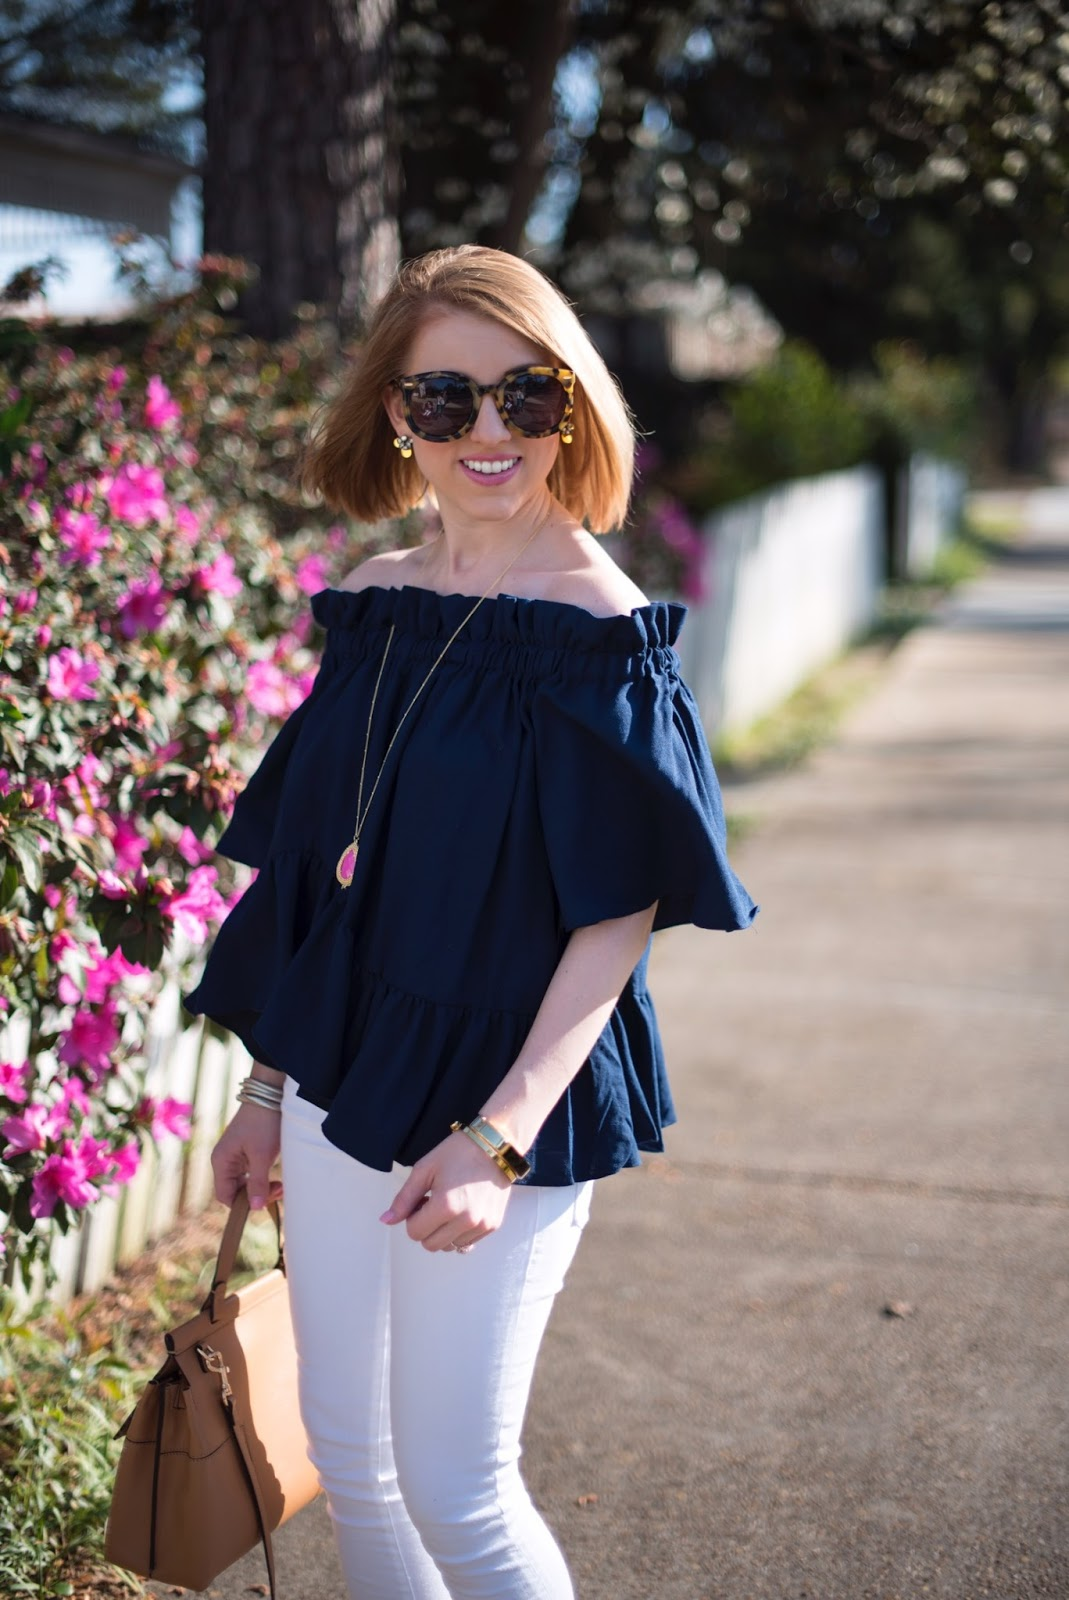 Ruffle Hem Top - Click through to see more on Something Delightful Blog!